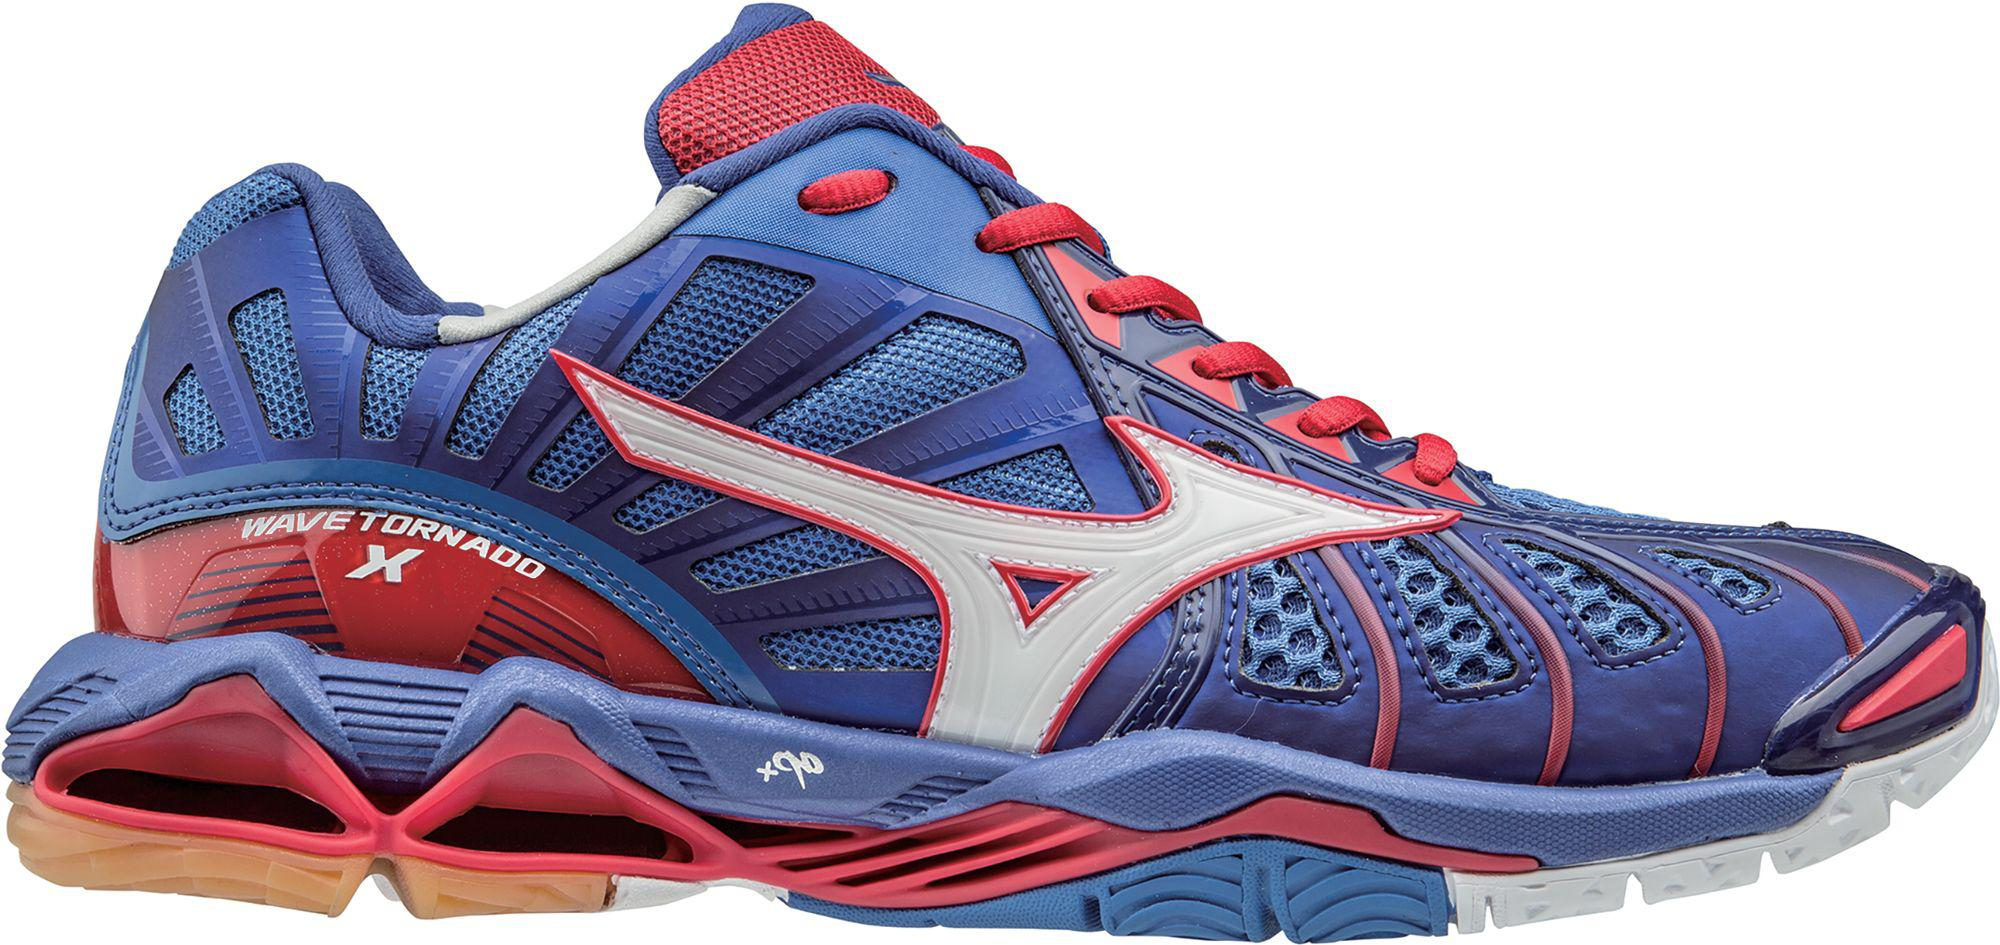 Blue Mizuno Volleyball Shoes